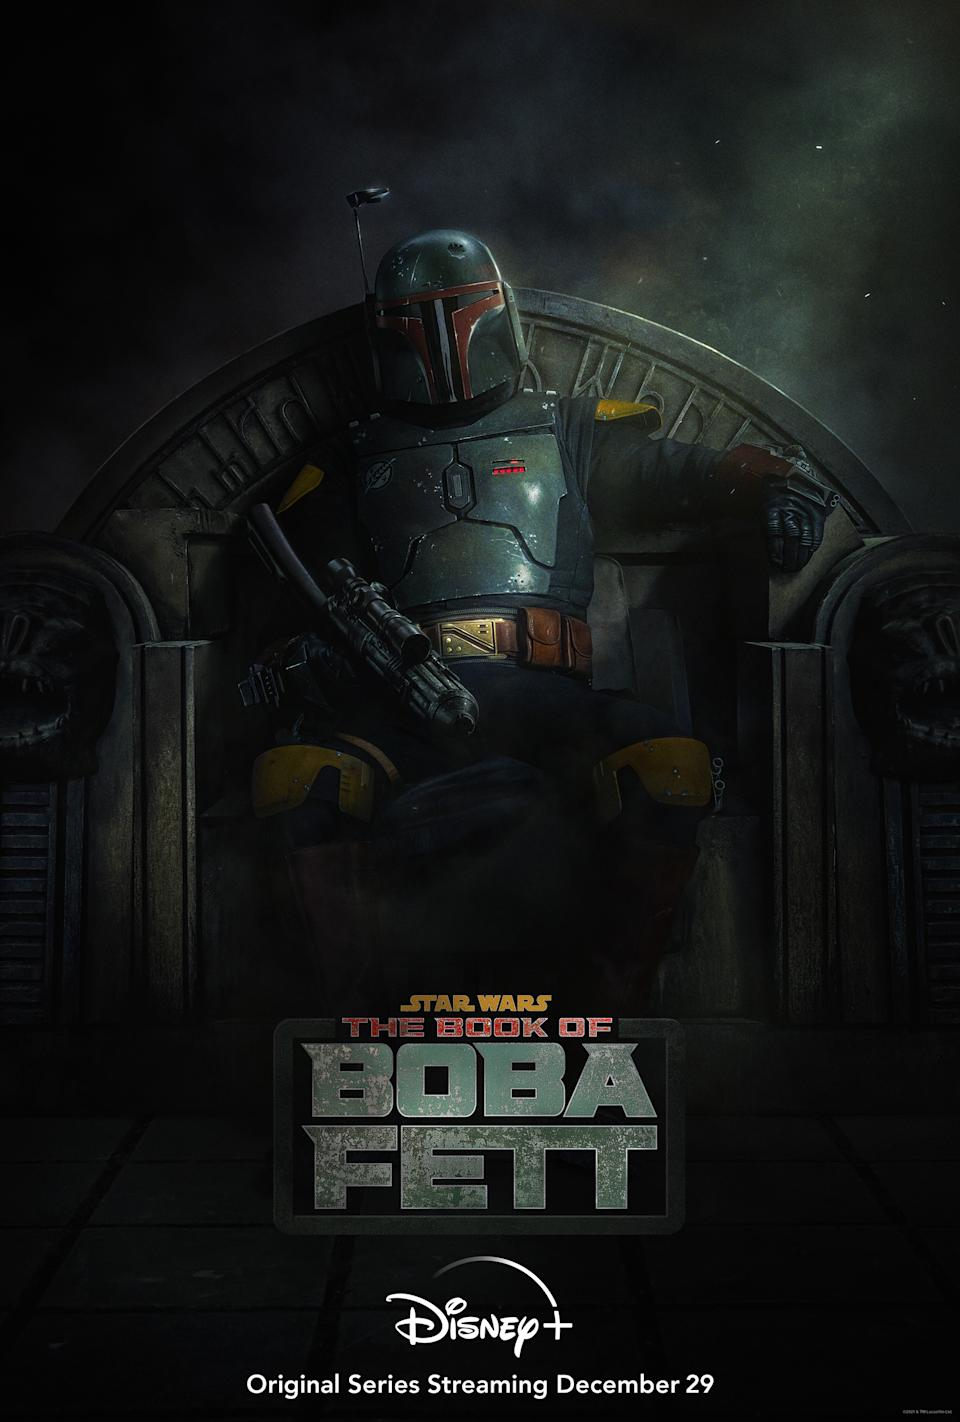 """""""The Book of Boba Fett""""—the new Lucasfilm series teased in a surprise end-credit sequence following the Season 2 finale of """"The Mandalorian""""—will premiere on Wednesday, December 29, exclusively on the streaming service Disney+. (Image: Disney+)"""